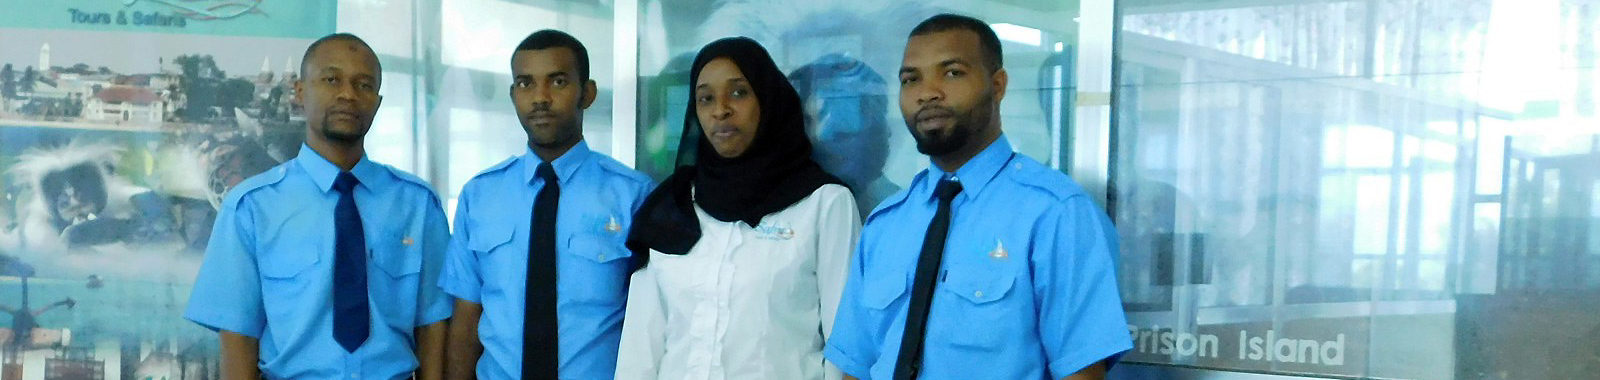 Equipe direction Safina tours